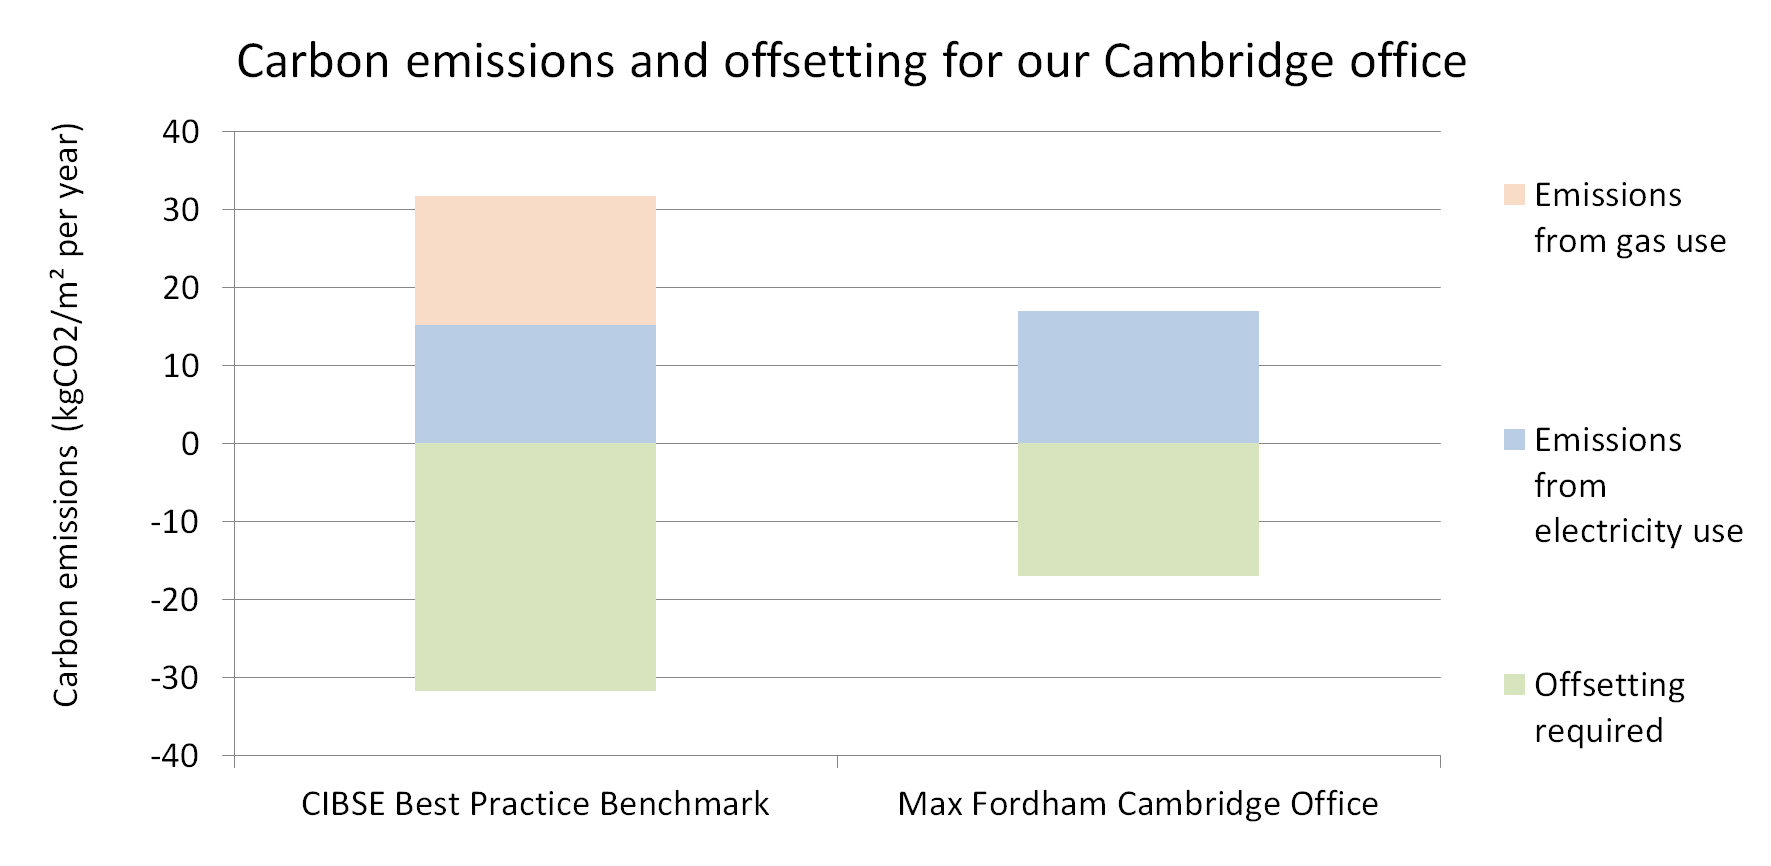 Comparison of carbon emissions from a typical best practice office and Max Fordham's Cambridge office